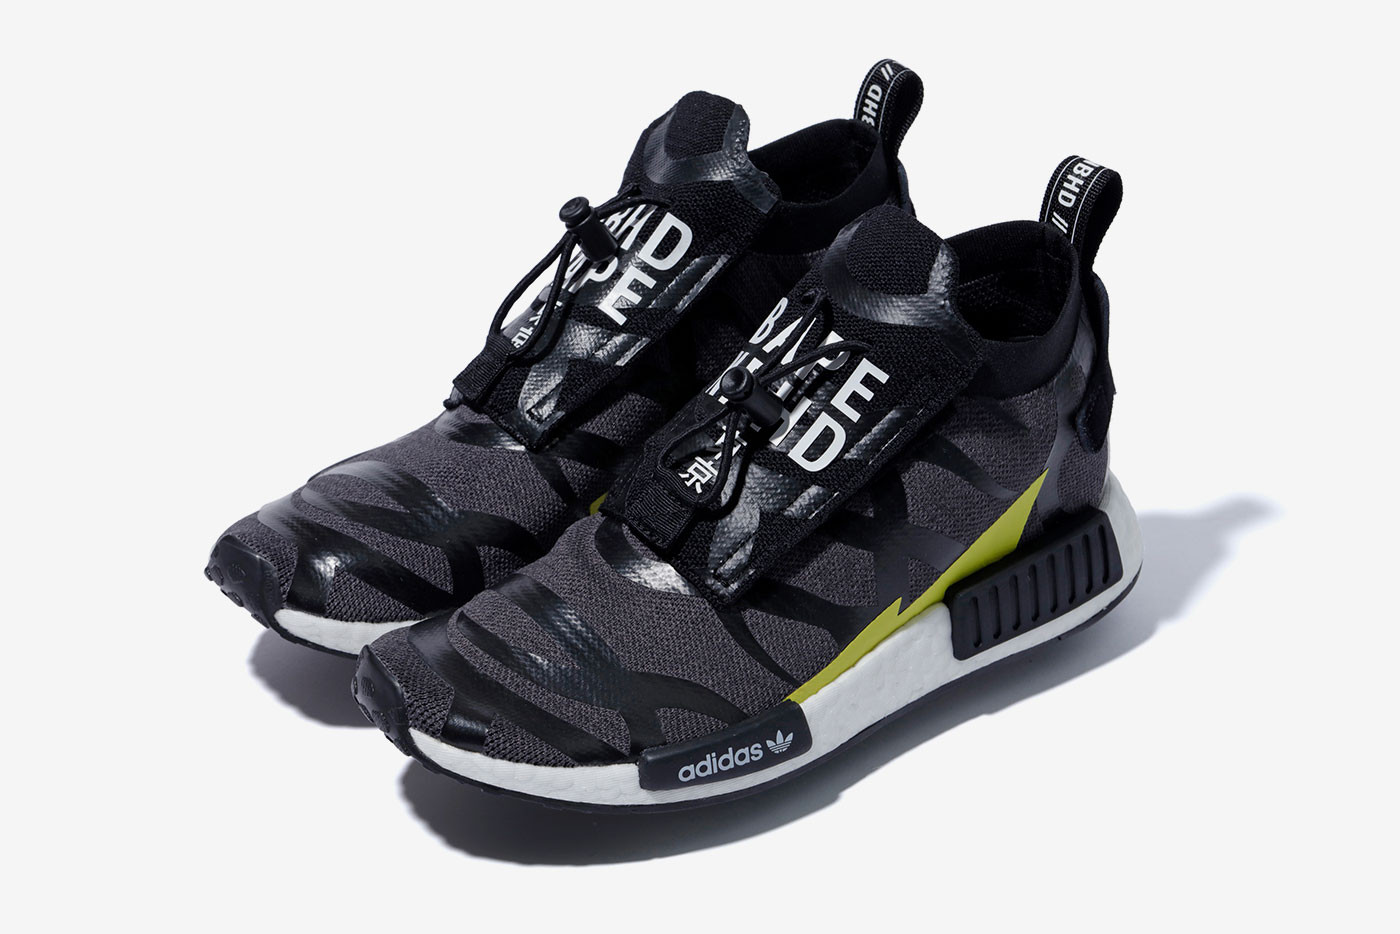 pretty nice 11b22 fd69d BAPE x NEIGHBORHOOD x adidas Originals Release nmd pod shark face motif  black white 1st camo